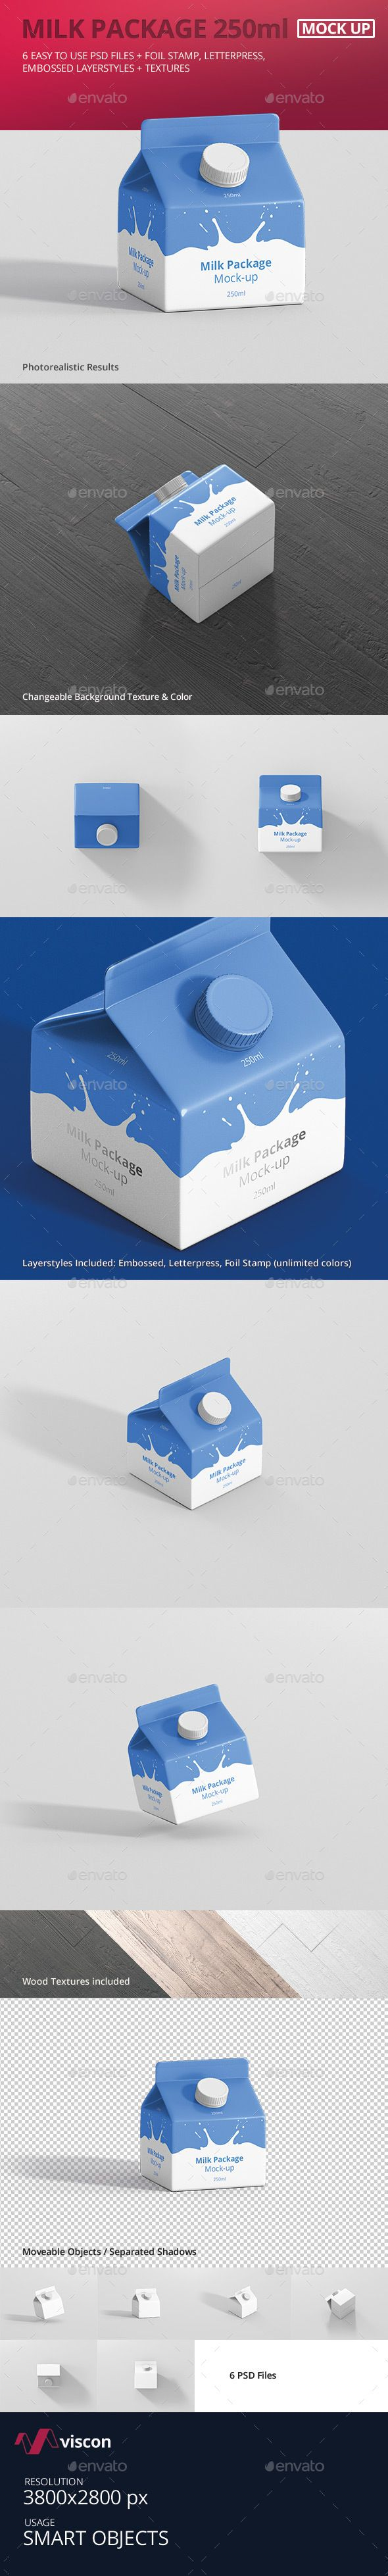 Juice / Milk Mockup - 250ml Carton Box by visconbiz 6 high quality 250ml juice / milk packaging mockup for print, portfolio, showcase, ads, banner and more. Organized and named layer